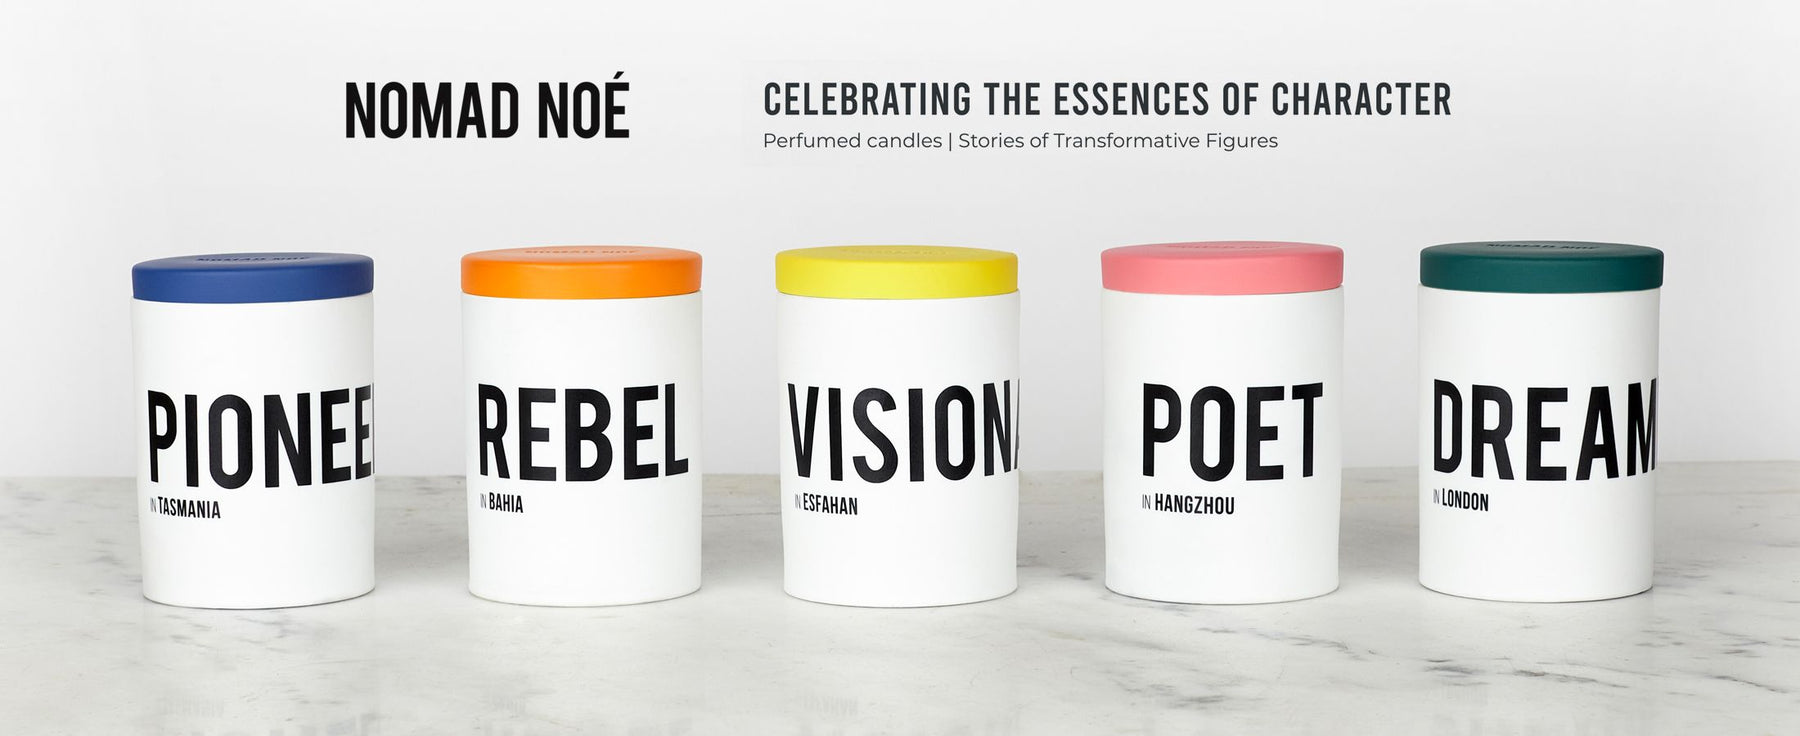 Nomad Noe - Celebrating the essences of character. Perfumed candles | Stories of Transformative Figures